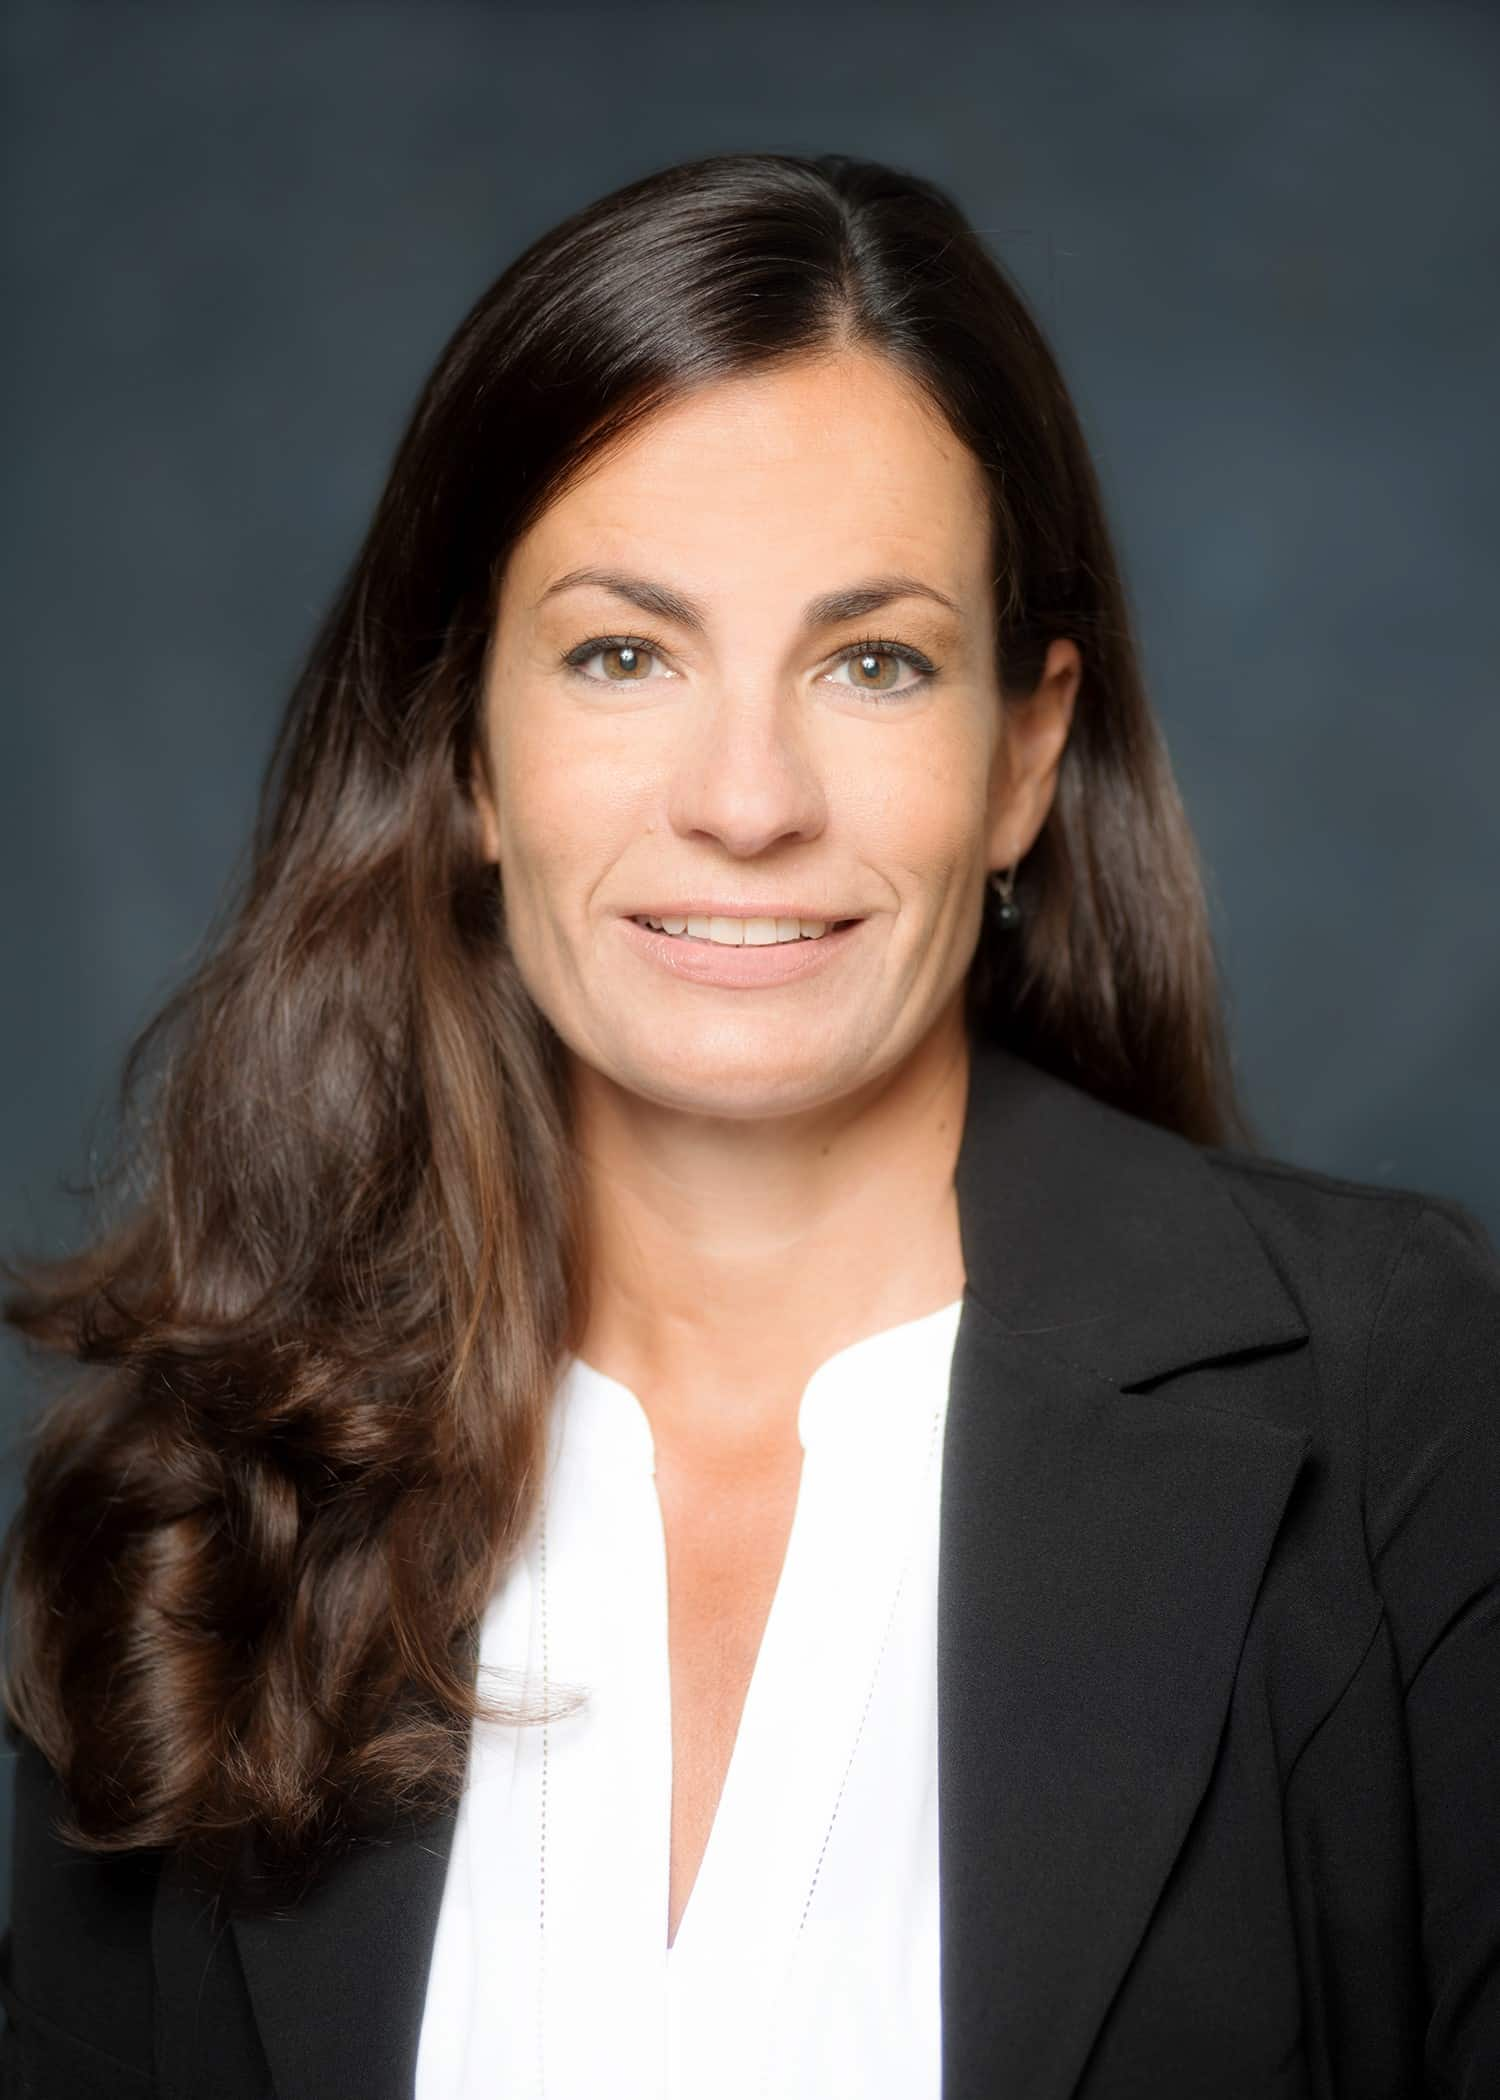 Kristina Jackson, Au.D specializing in hearing aid software